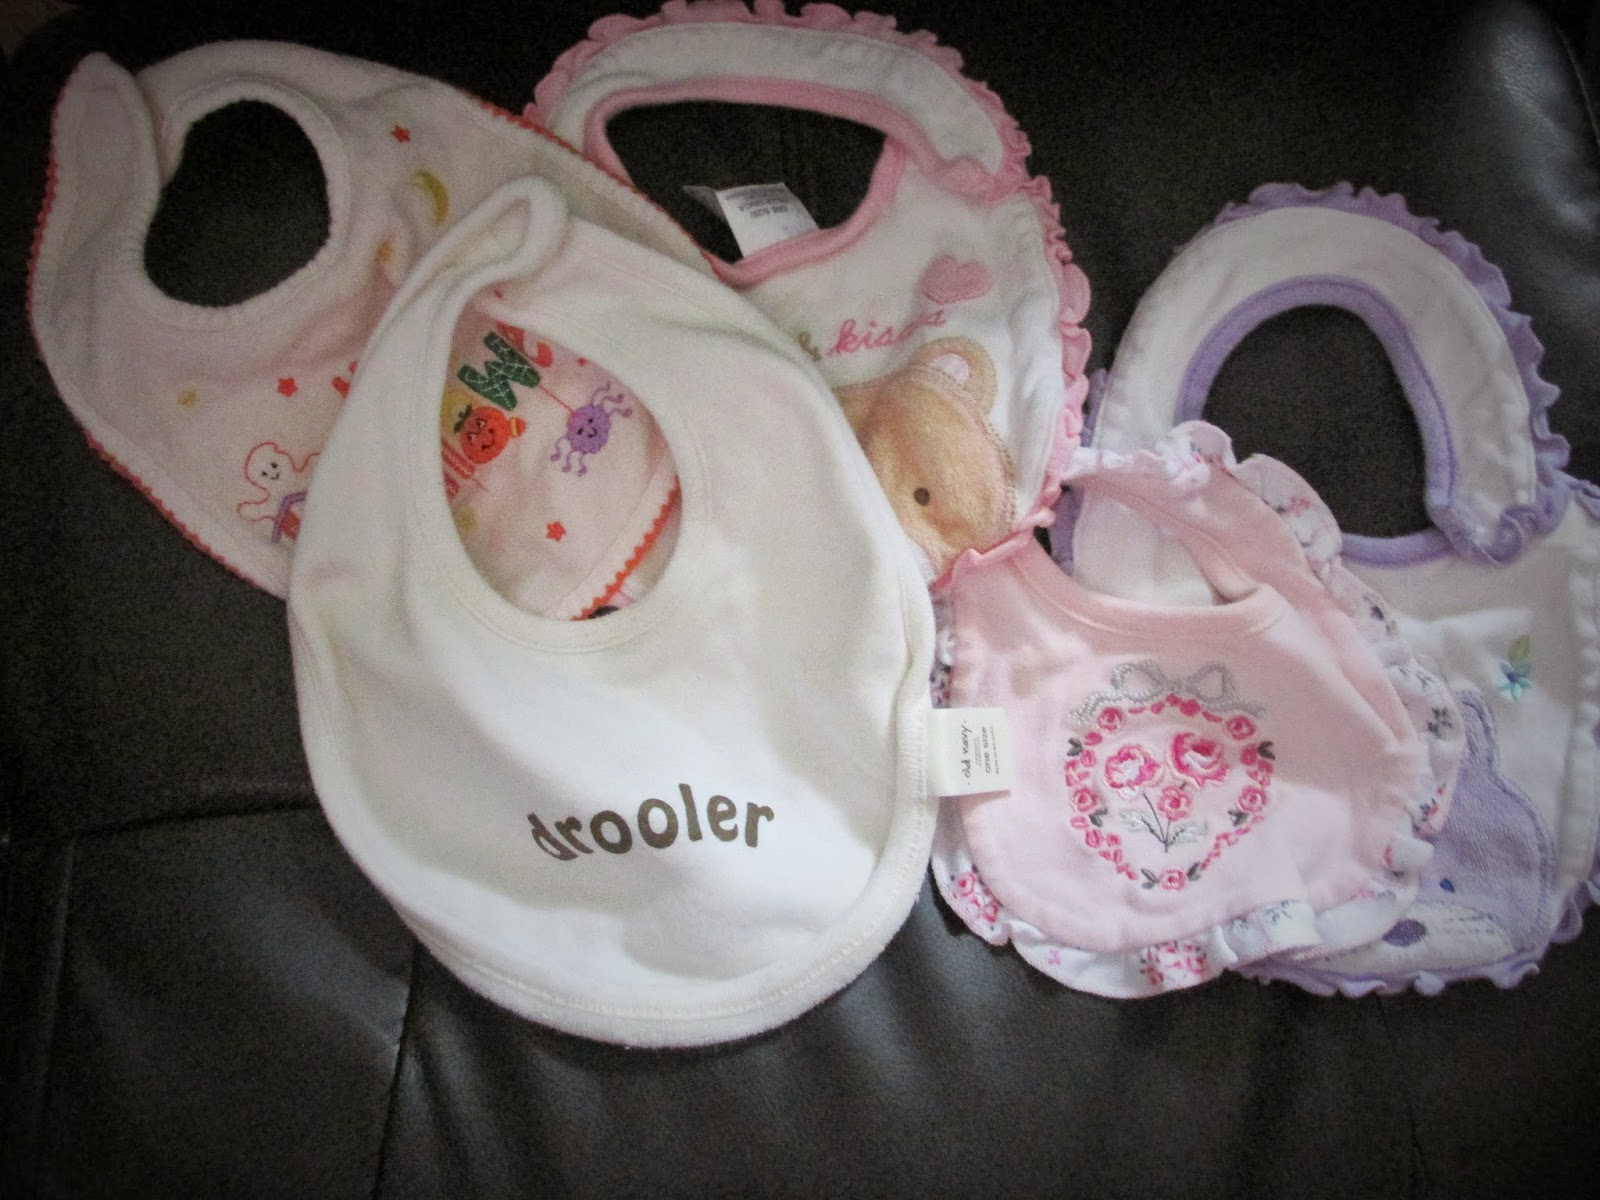 Baby Bibs I bought